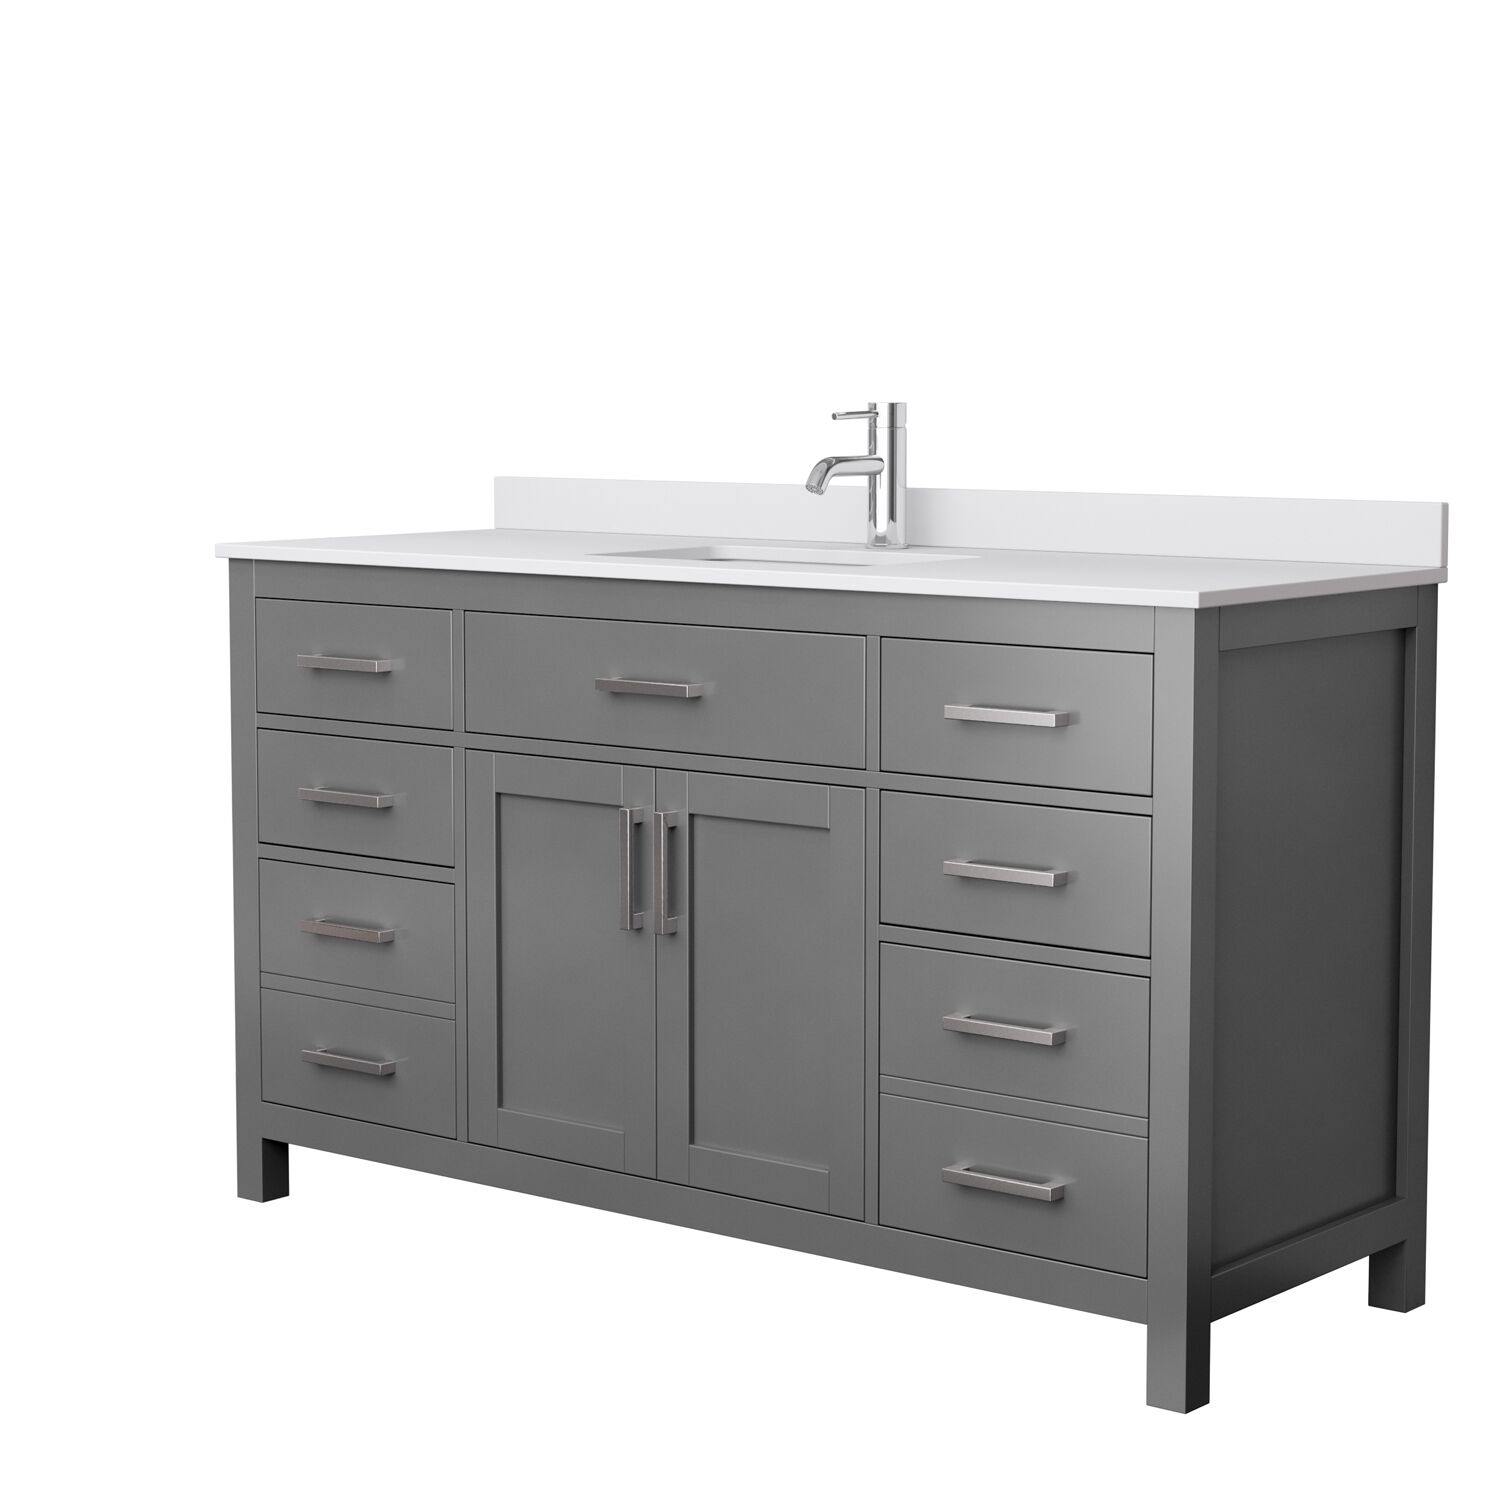 "60"" Single Bathroom Vanity in Dark Gray, White Cultured Marble Countertop, Undermount Square Sink, No Mirror"